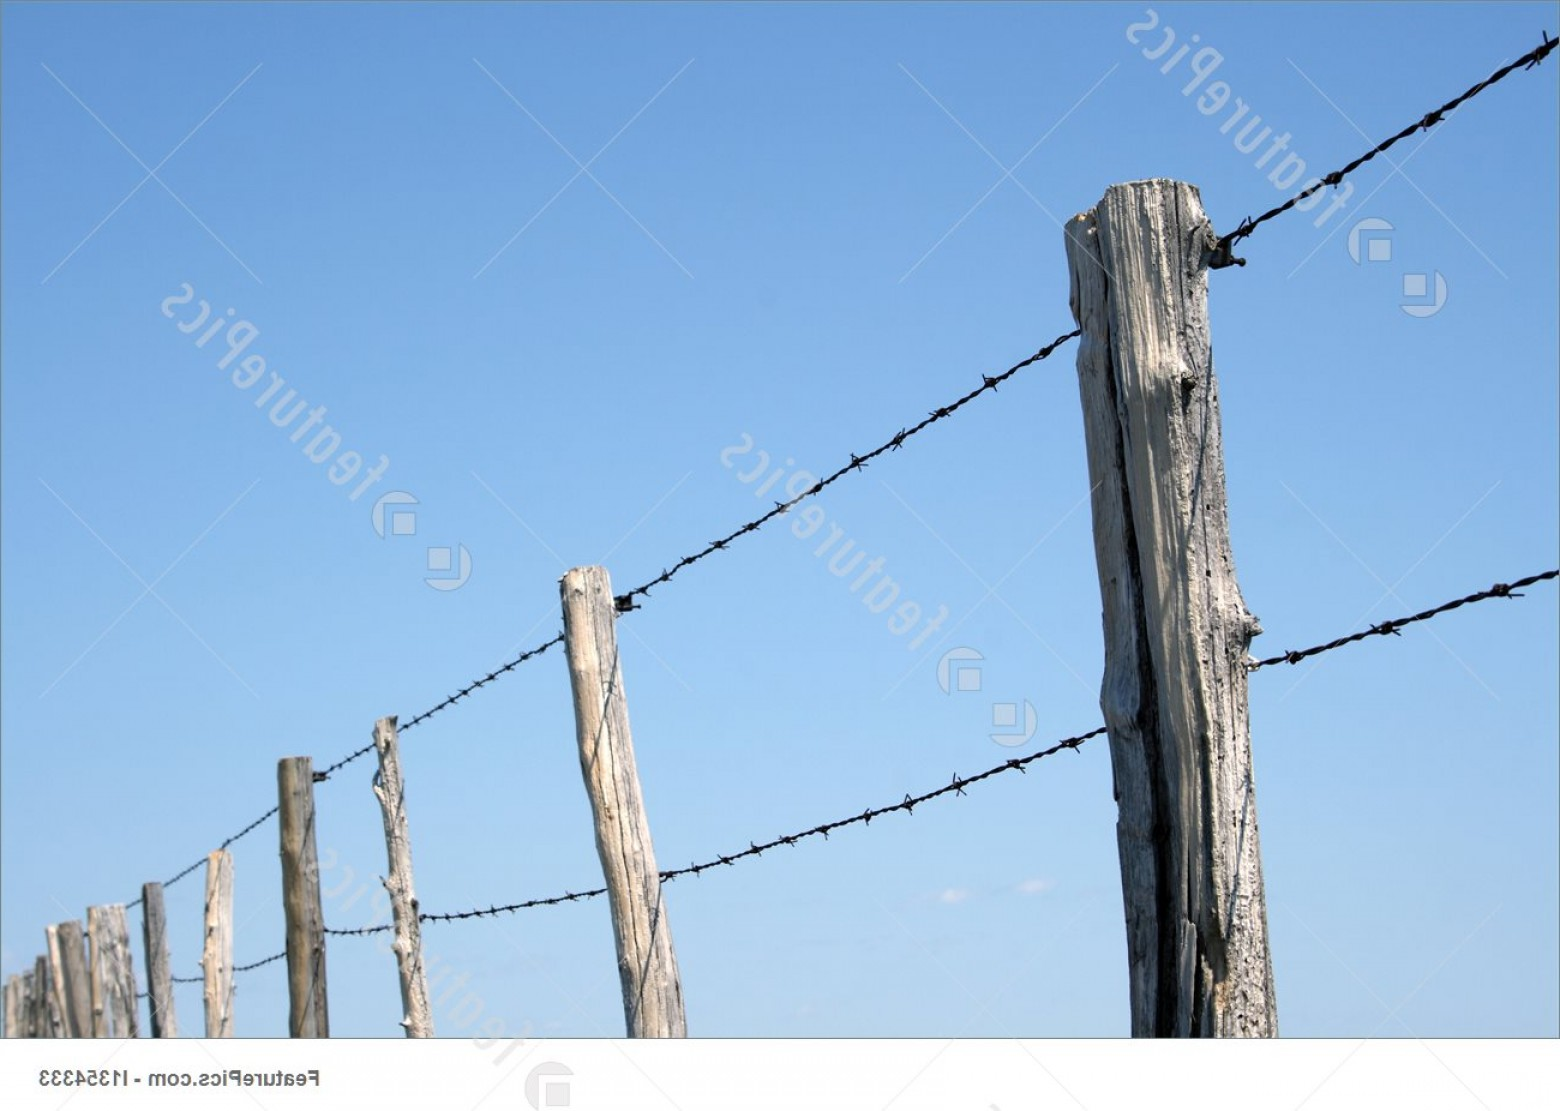 Fence Post Barbed Wire Vector Clip Art: Barbed Wire Farm Fence Against Blue Sky Picture